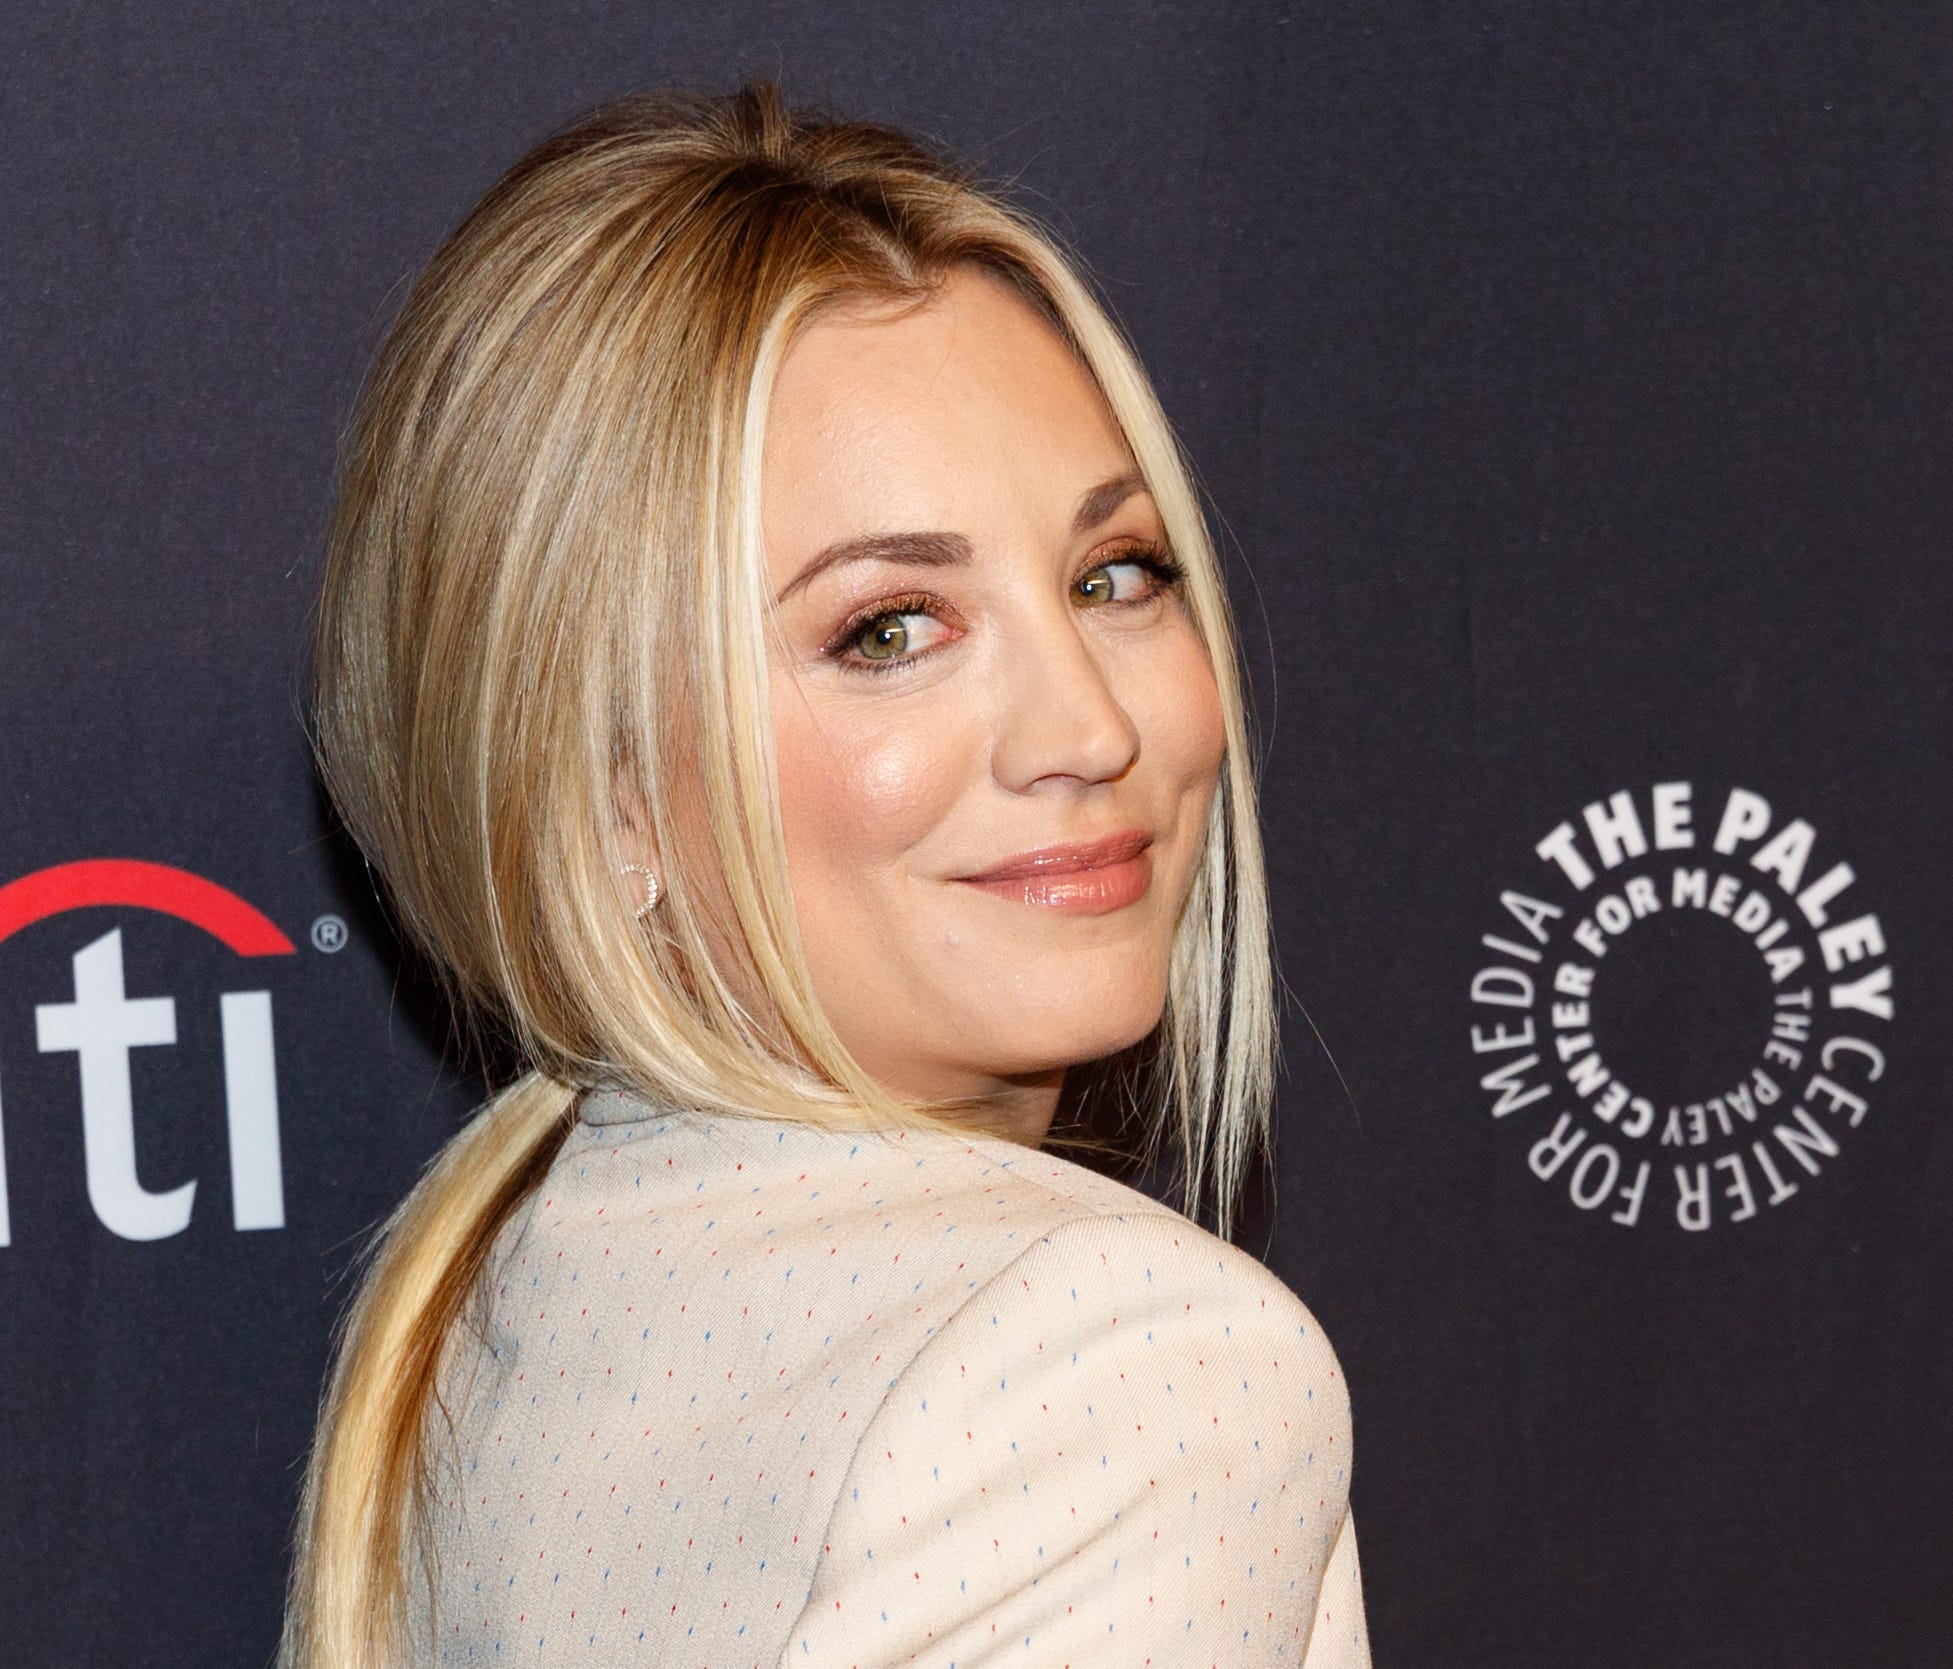 Kaley Cuoco attends the 2018 PaleyFest Los Angeles event for 'The Big Bang Theory' And 'Young Sheldon' on March 21, 2018 in Hollywood, Calif.